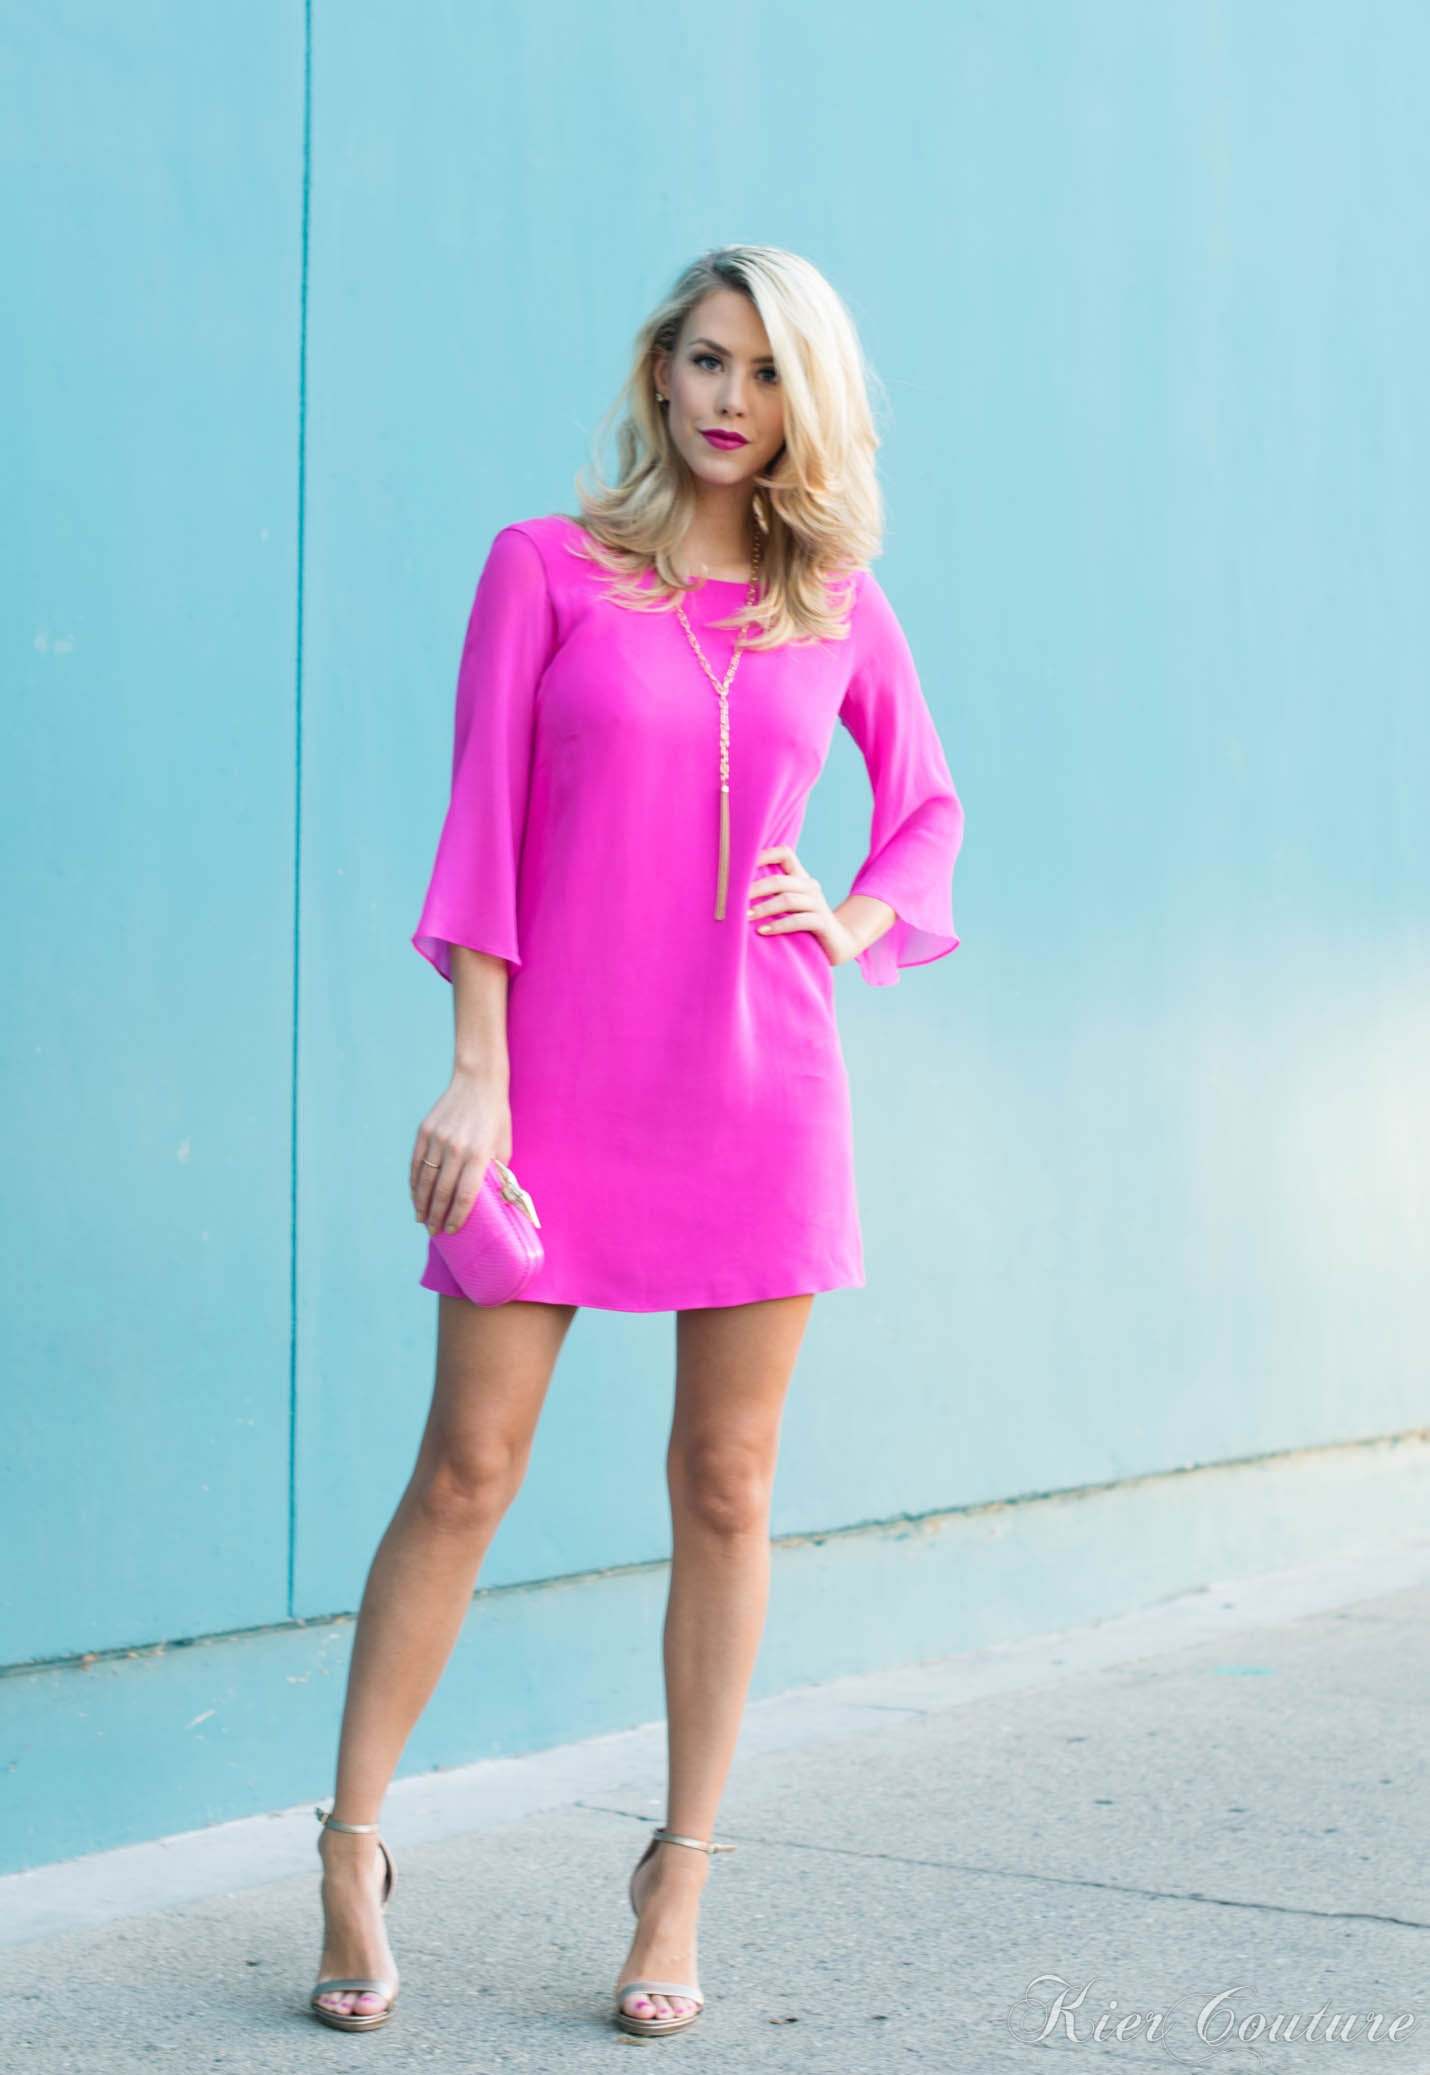 House of DVF Premier Party…